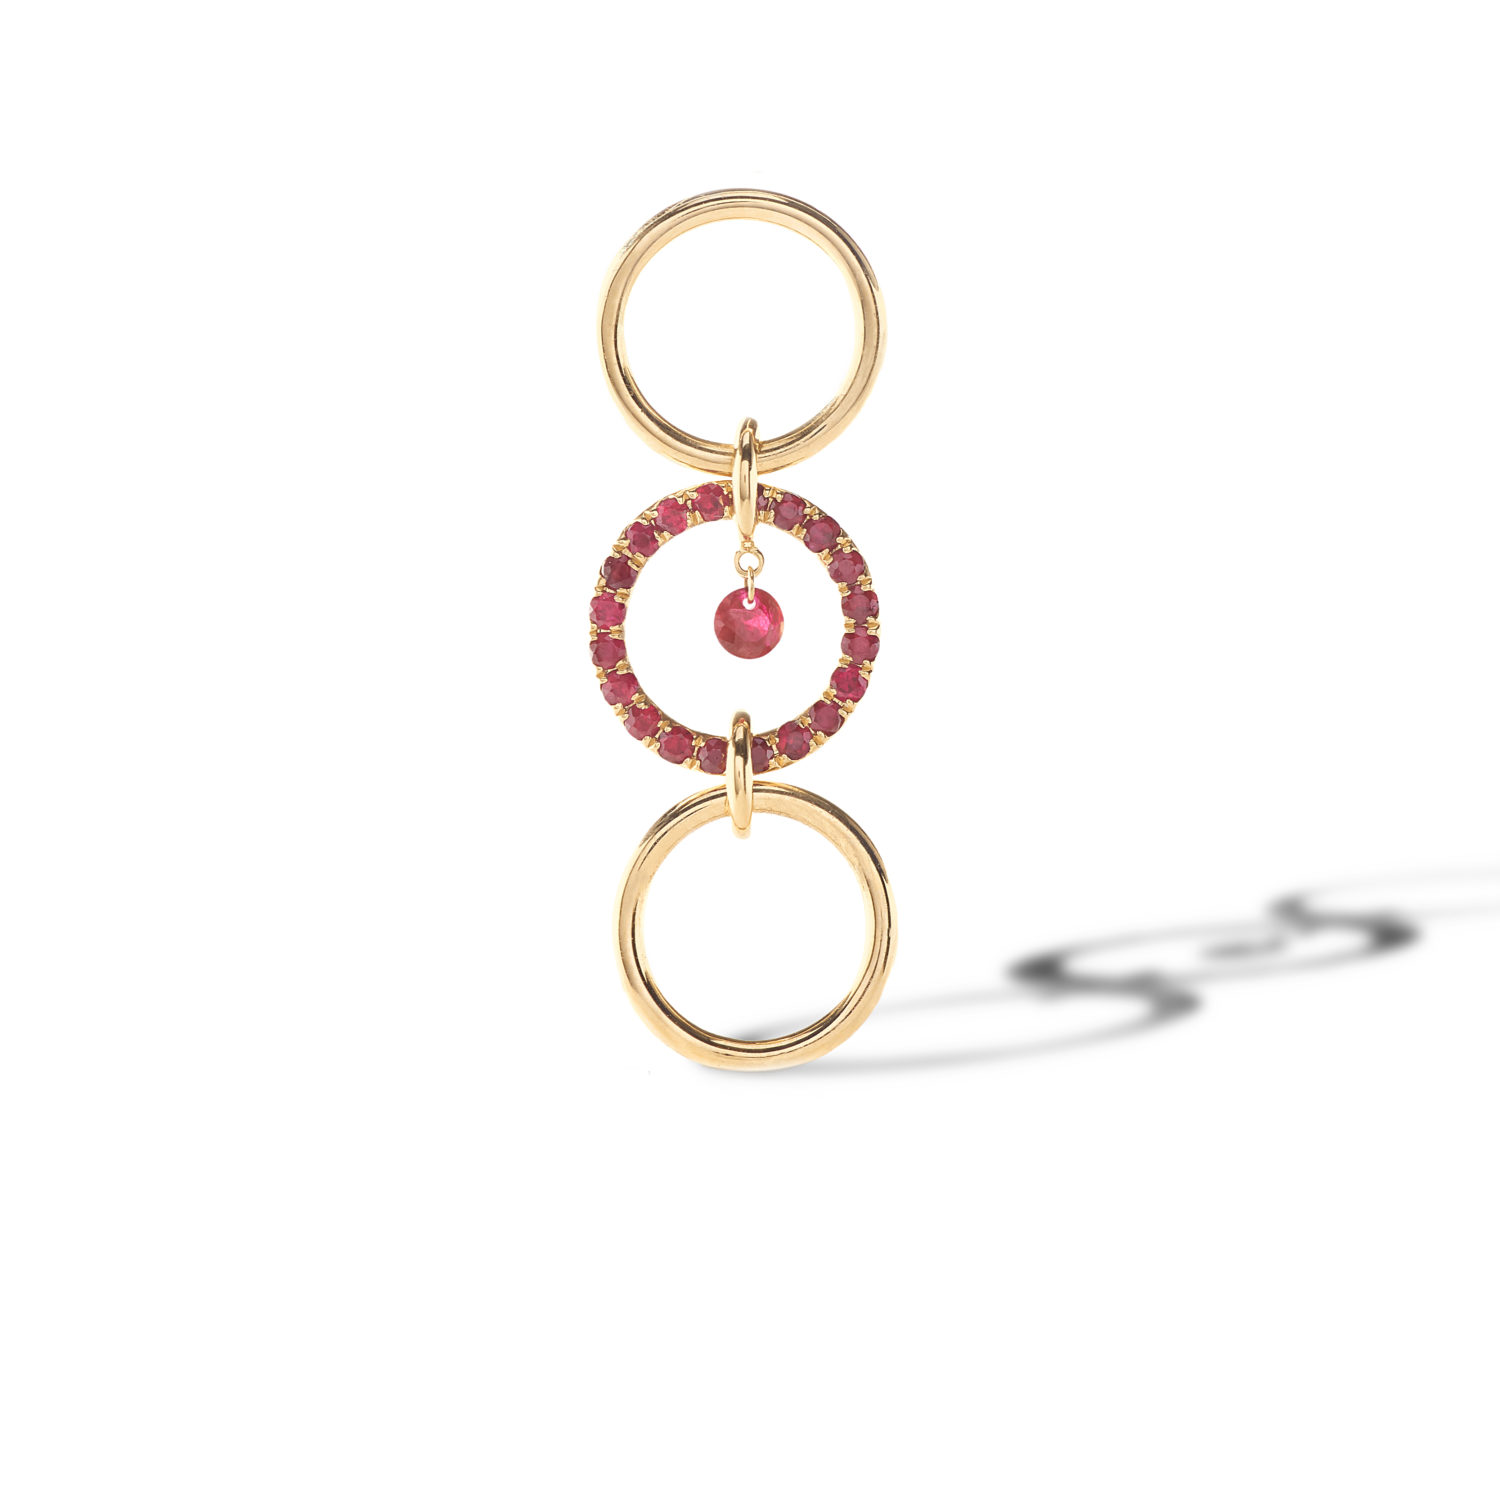 BOUCLE D'OREILLE PADAM RUBIS PERSEE